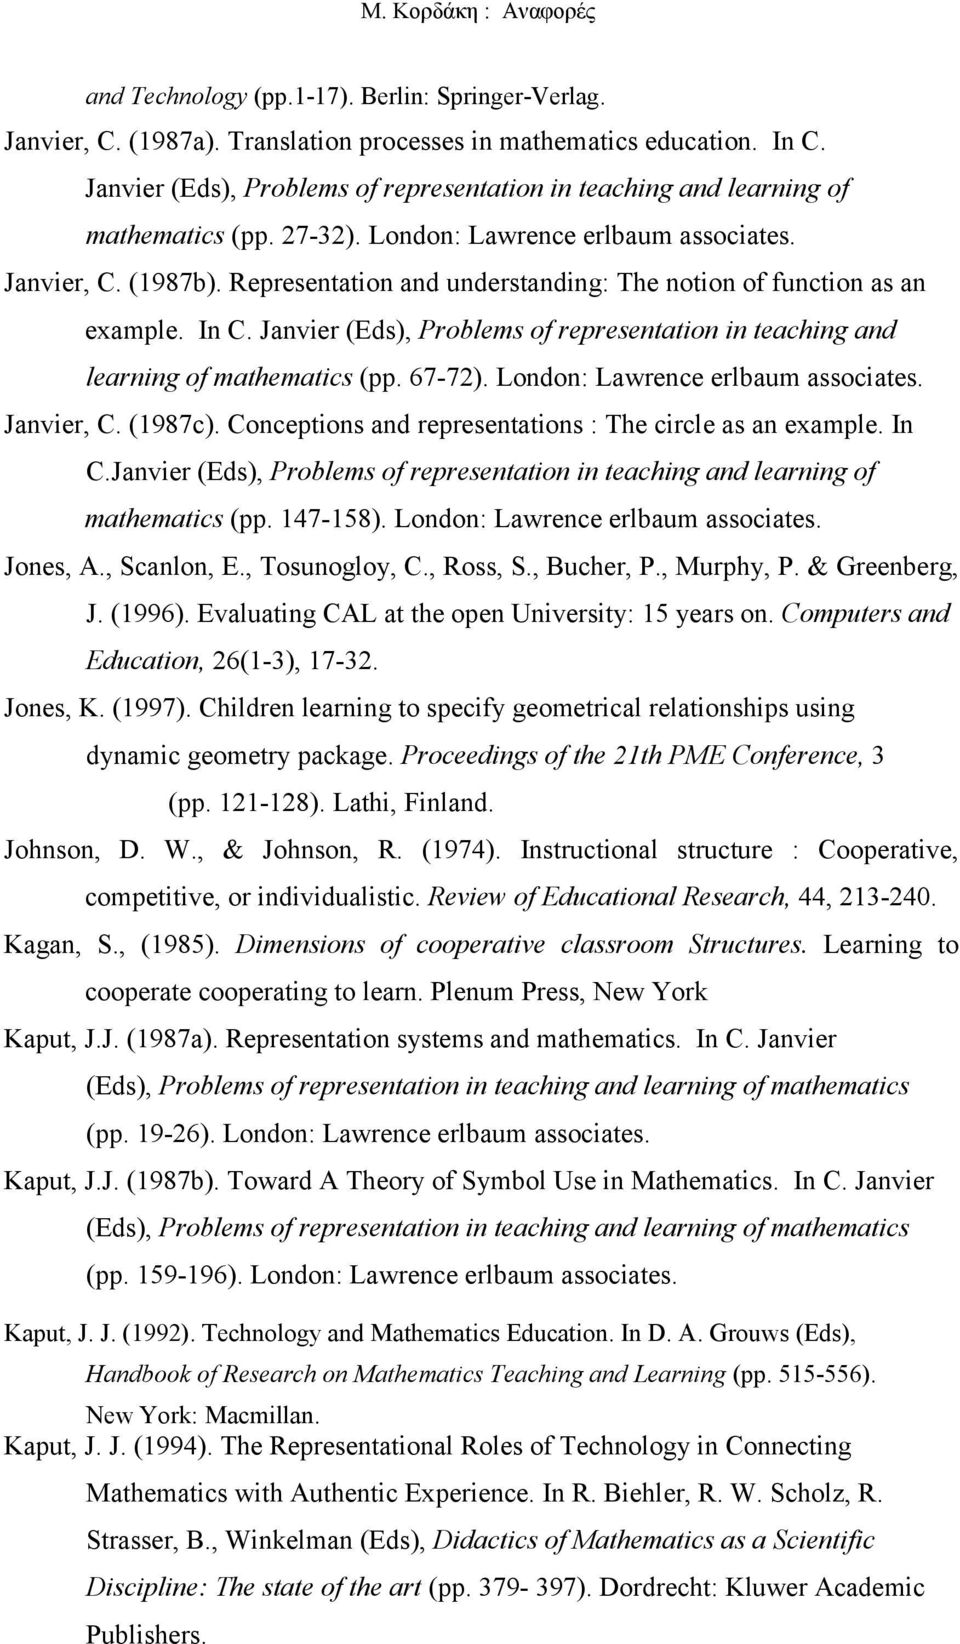 Representation and understanding: The notion of function as an example. In C. Janvier (Eds), Problems of representation in teaching and learning of mathematics (pp. 67-72).